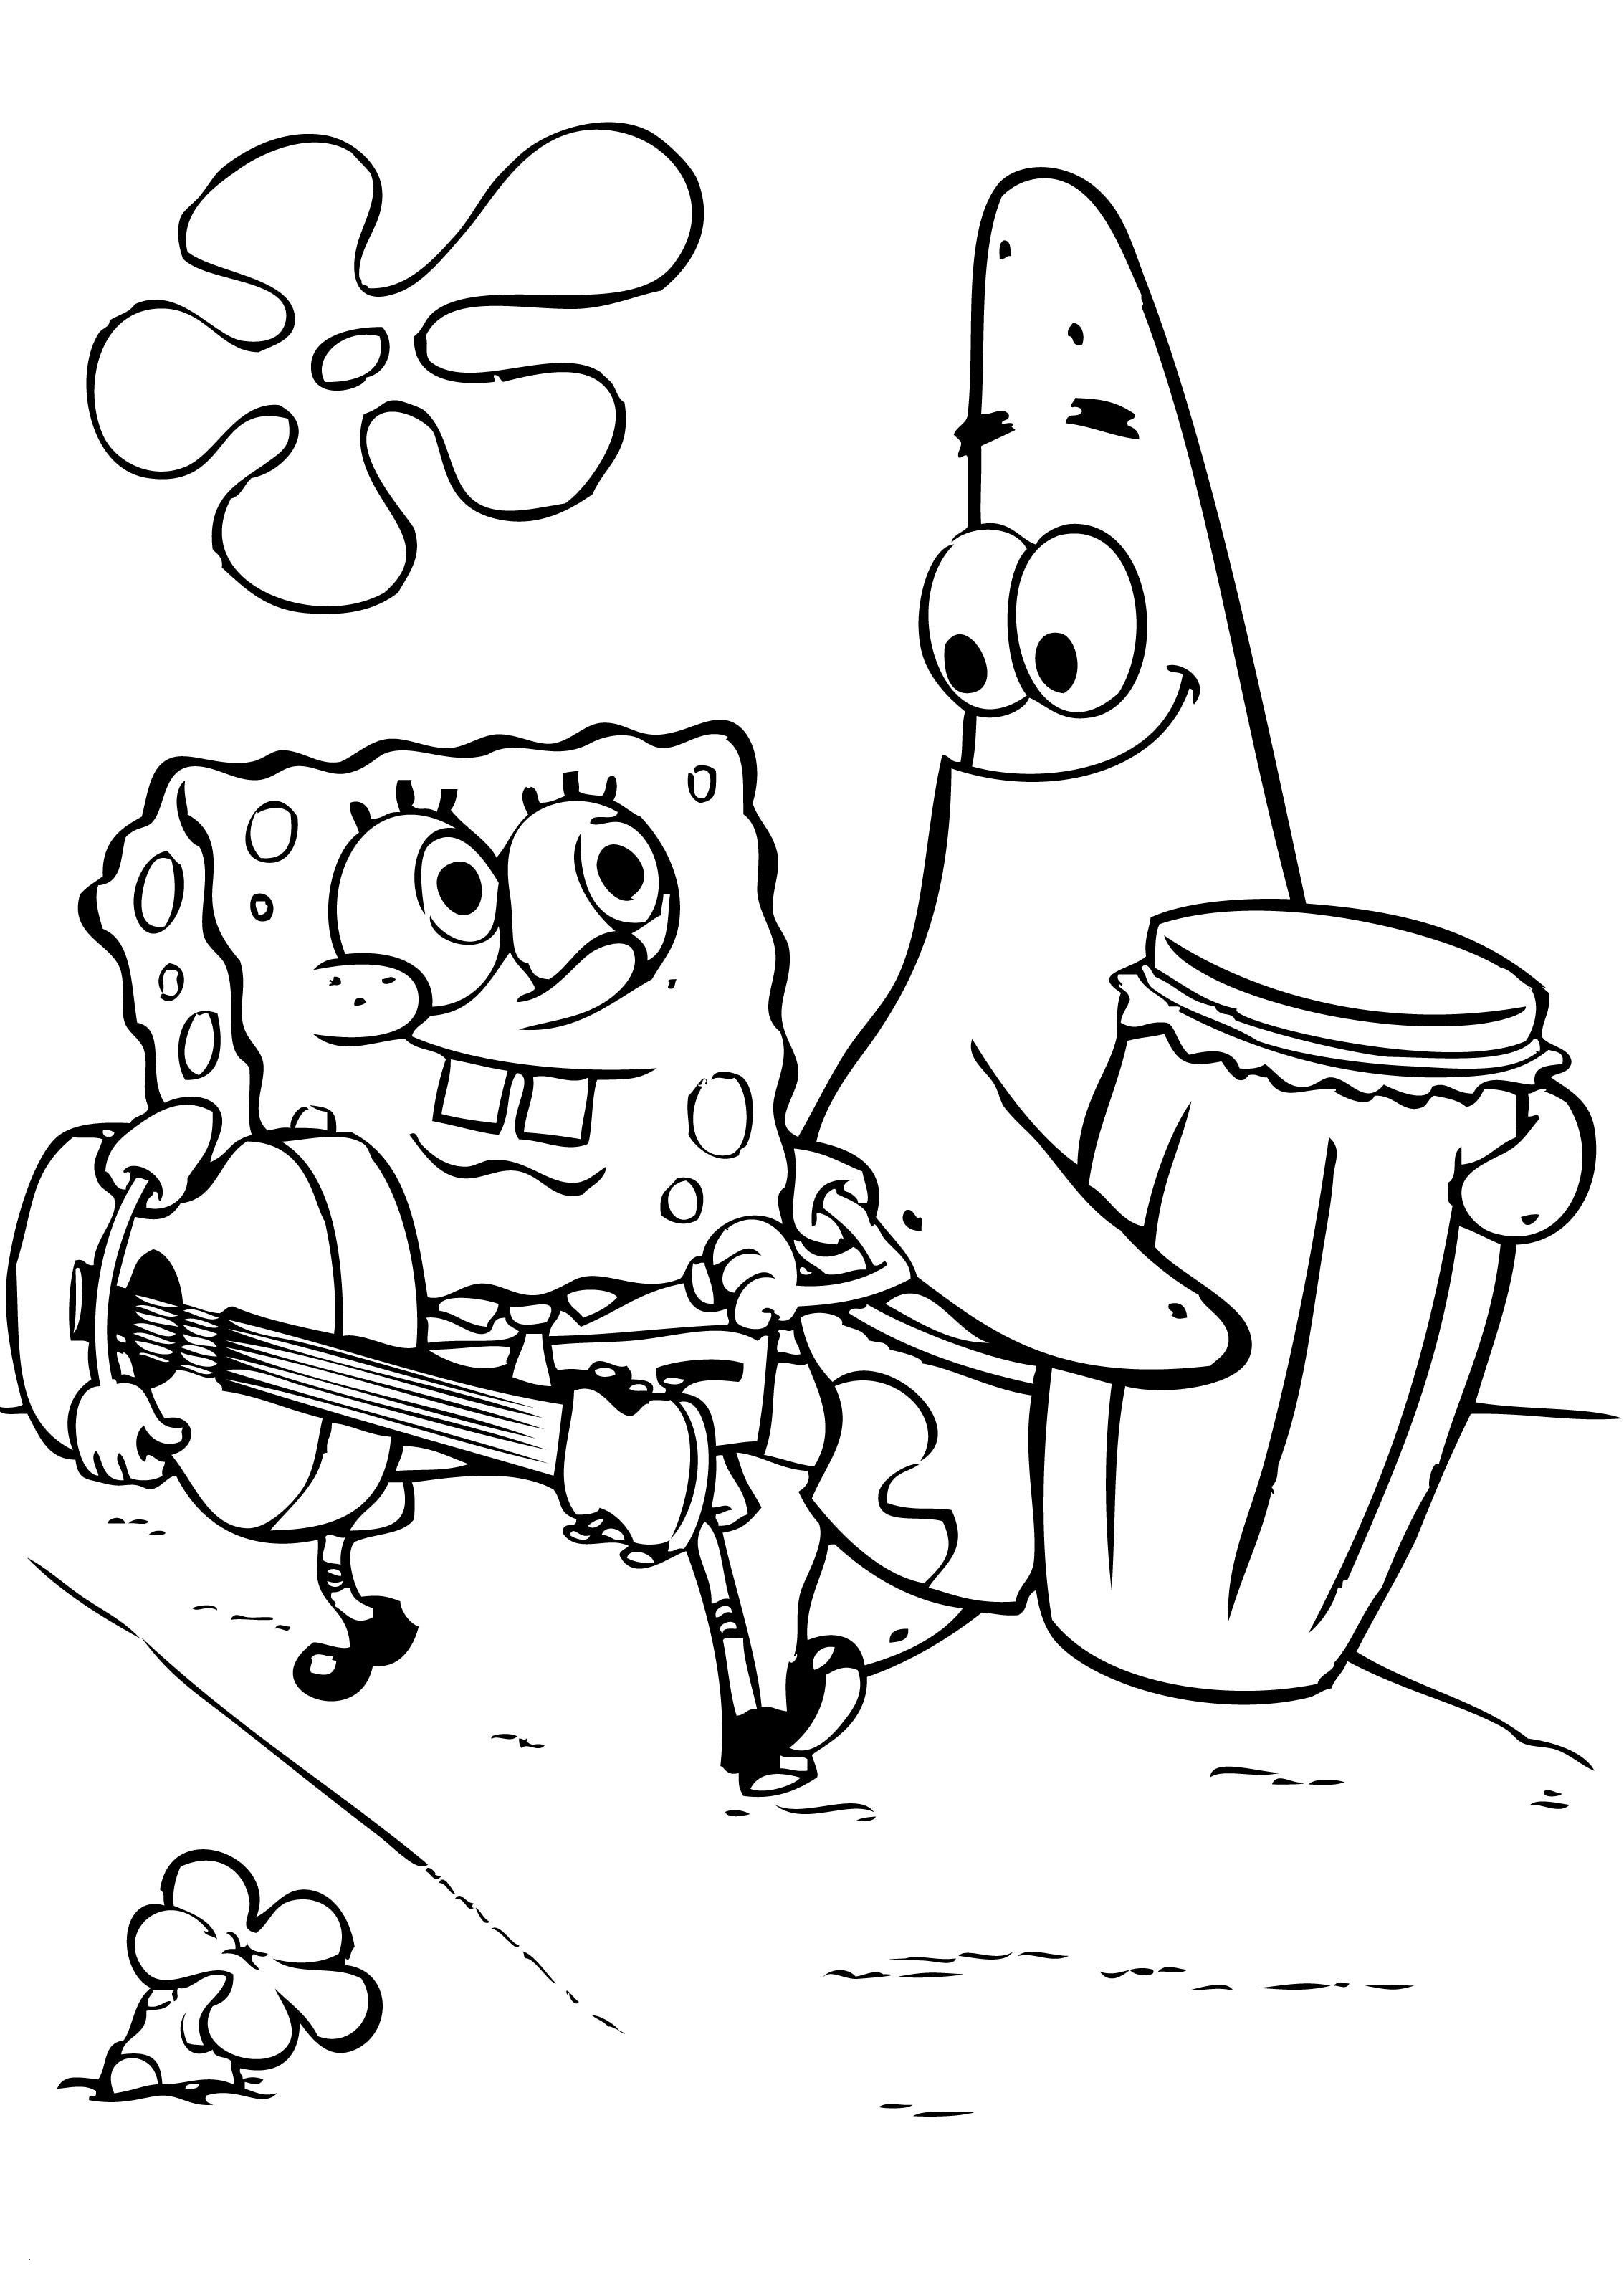 Spongebob Bilder Zum Ausmalen Einzigartig Spongebob Squarepants Coloring Pages Luxury Cool Coloring Page Luxus Stock